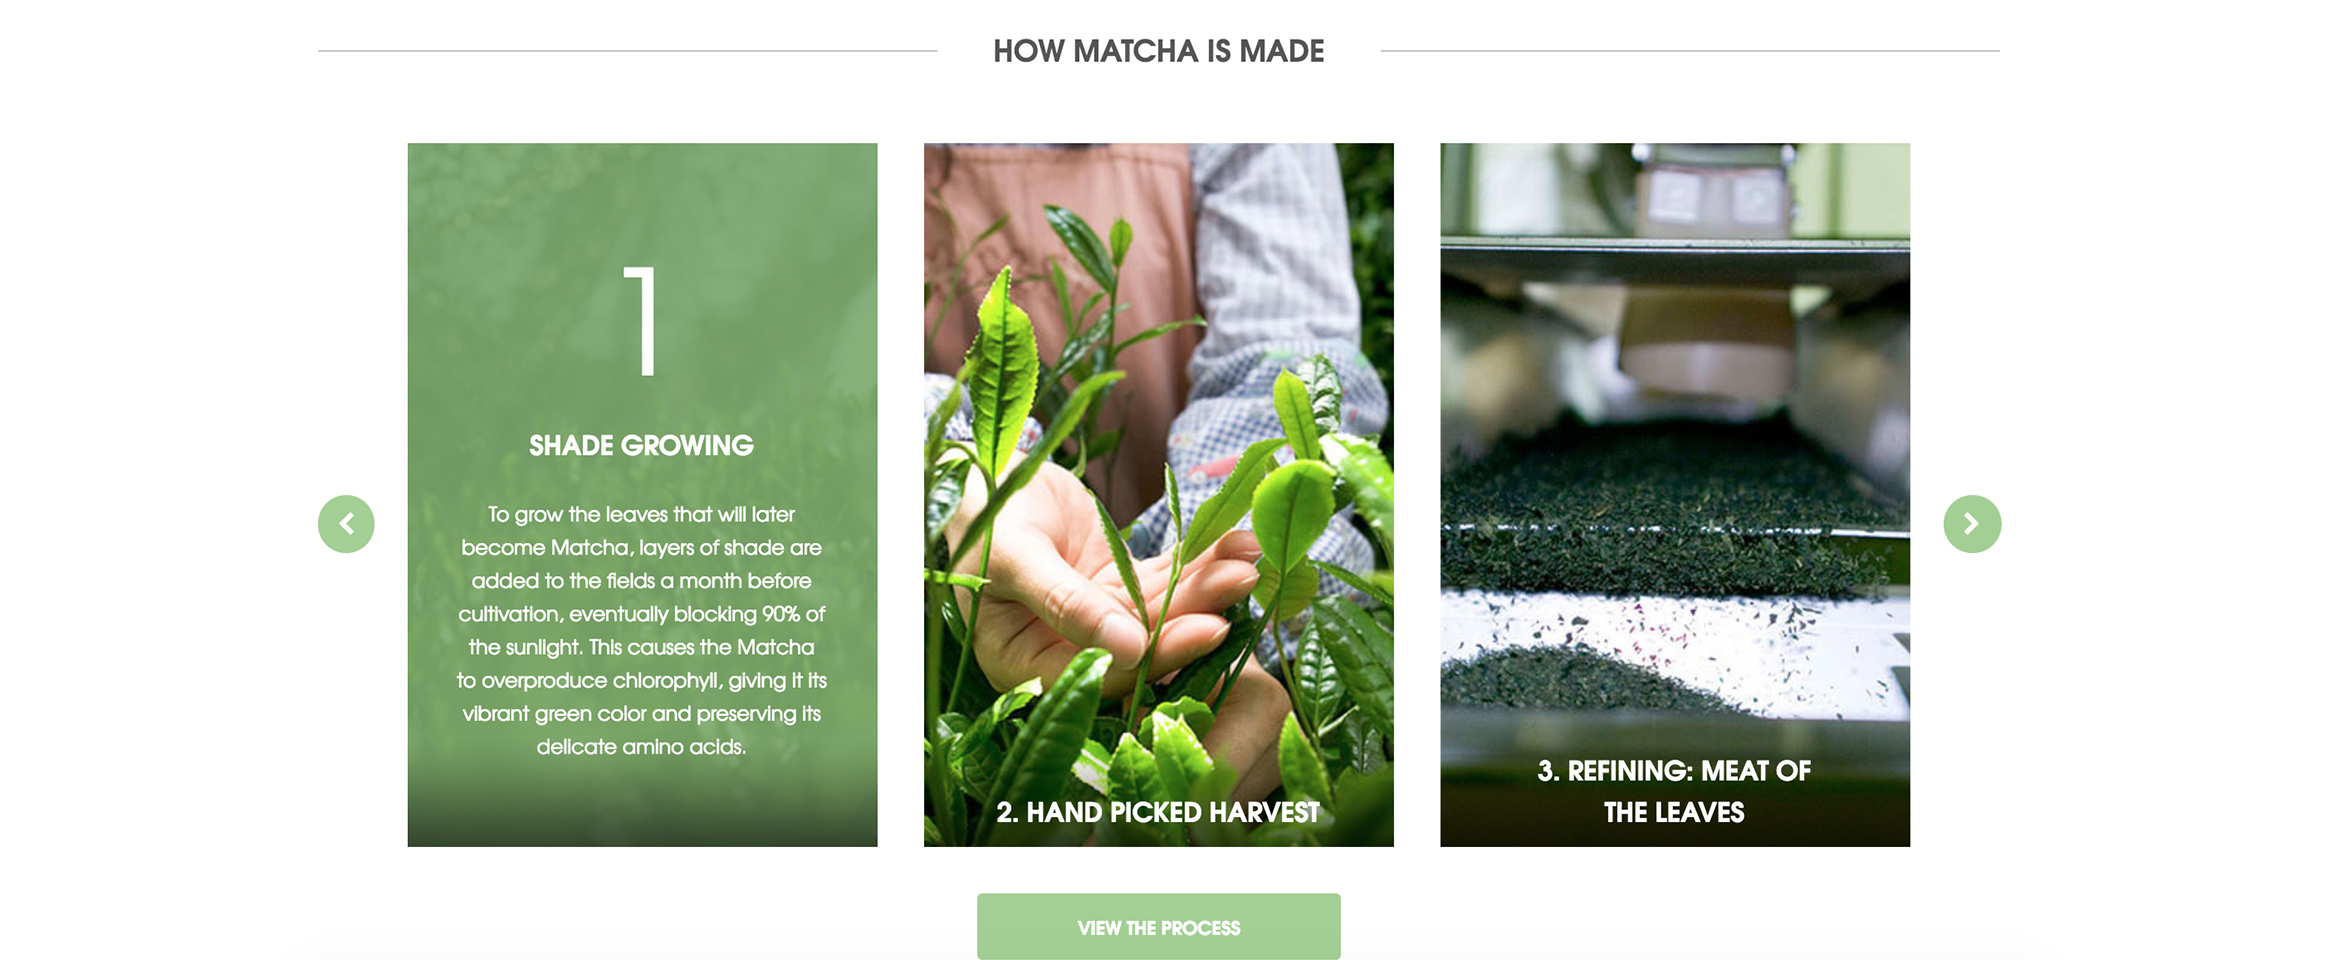 Premium Matcha Tea Company Brews a New Look Online Build Image-2